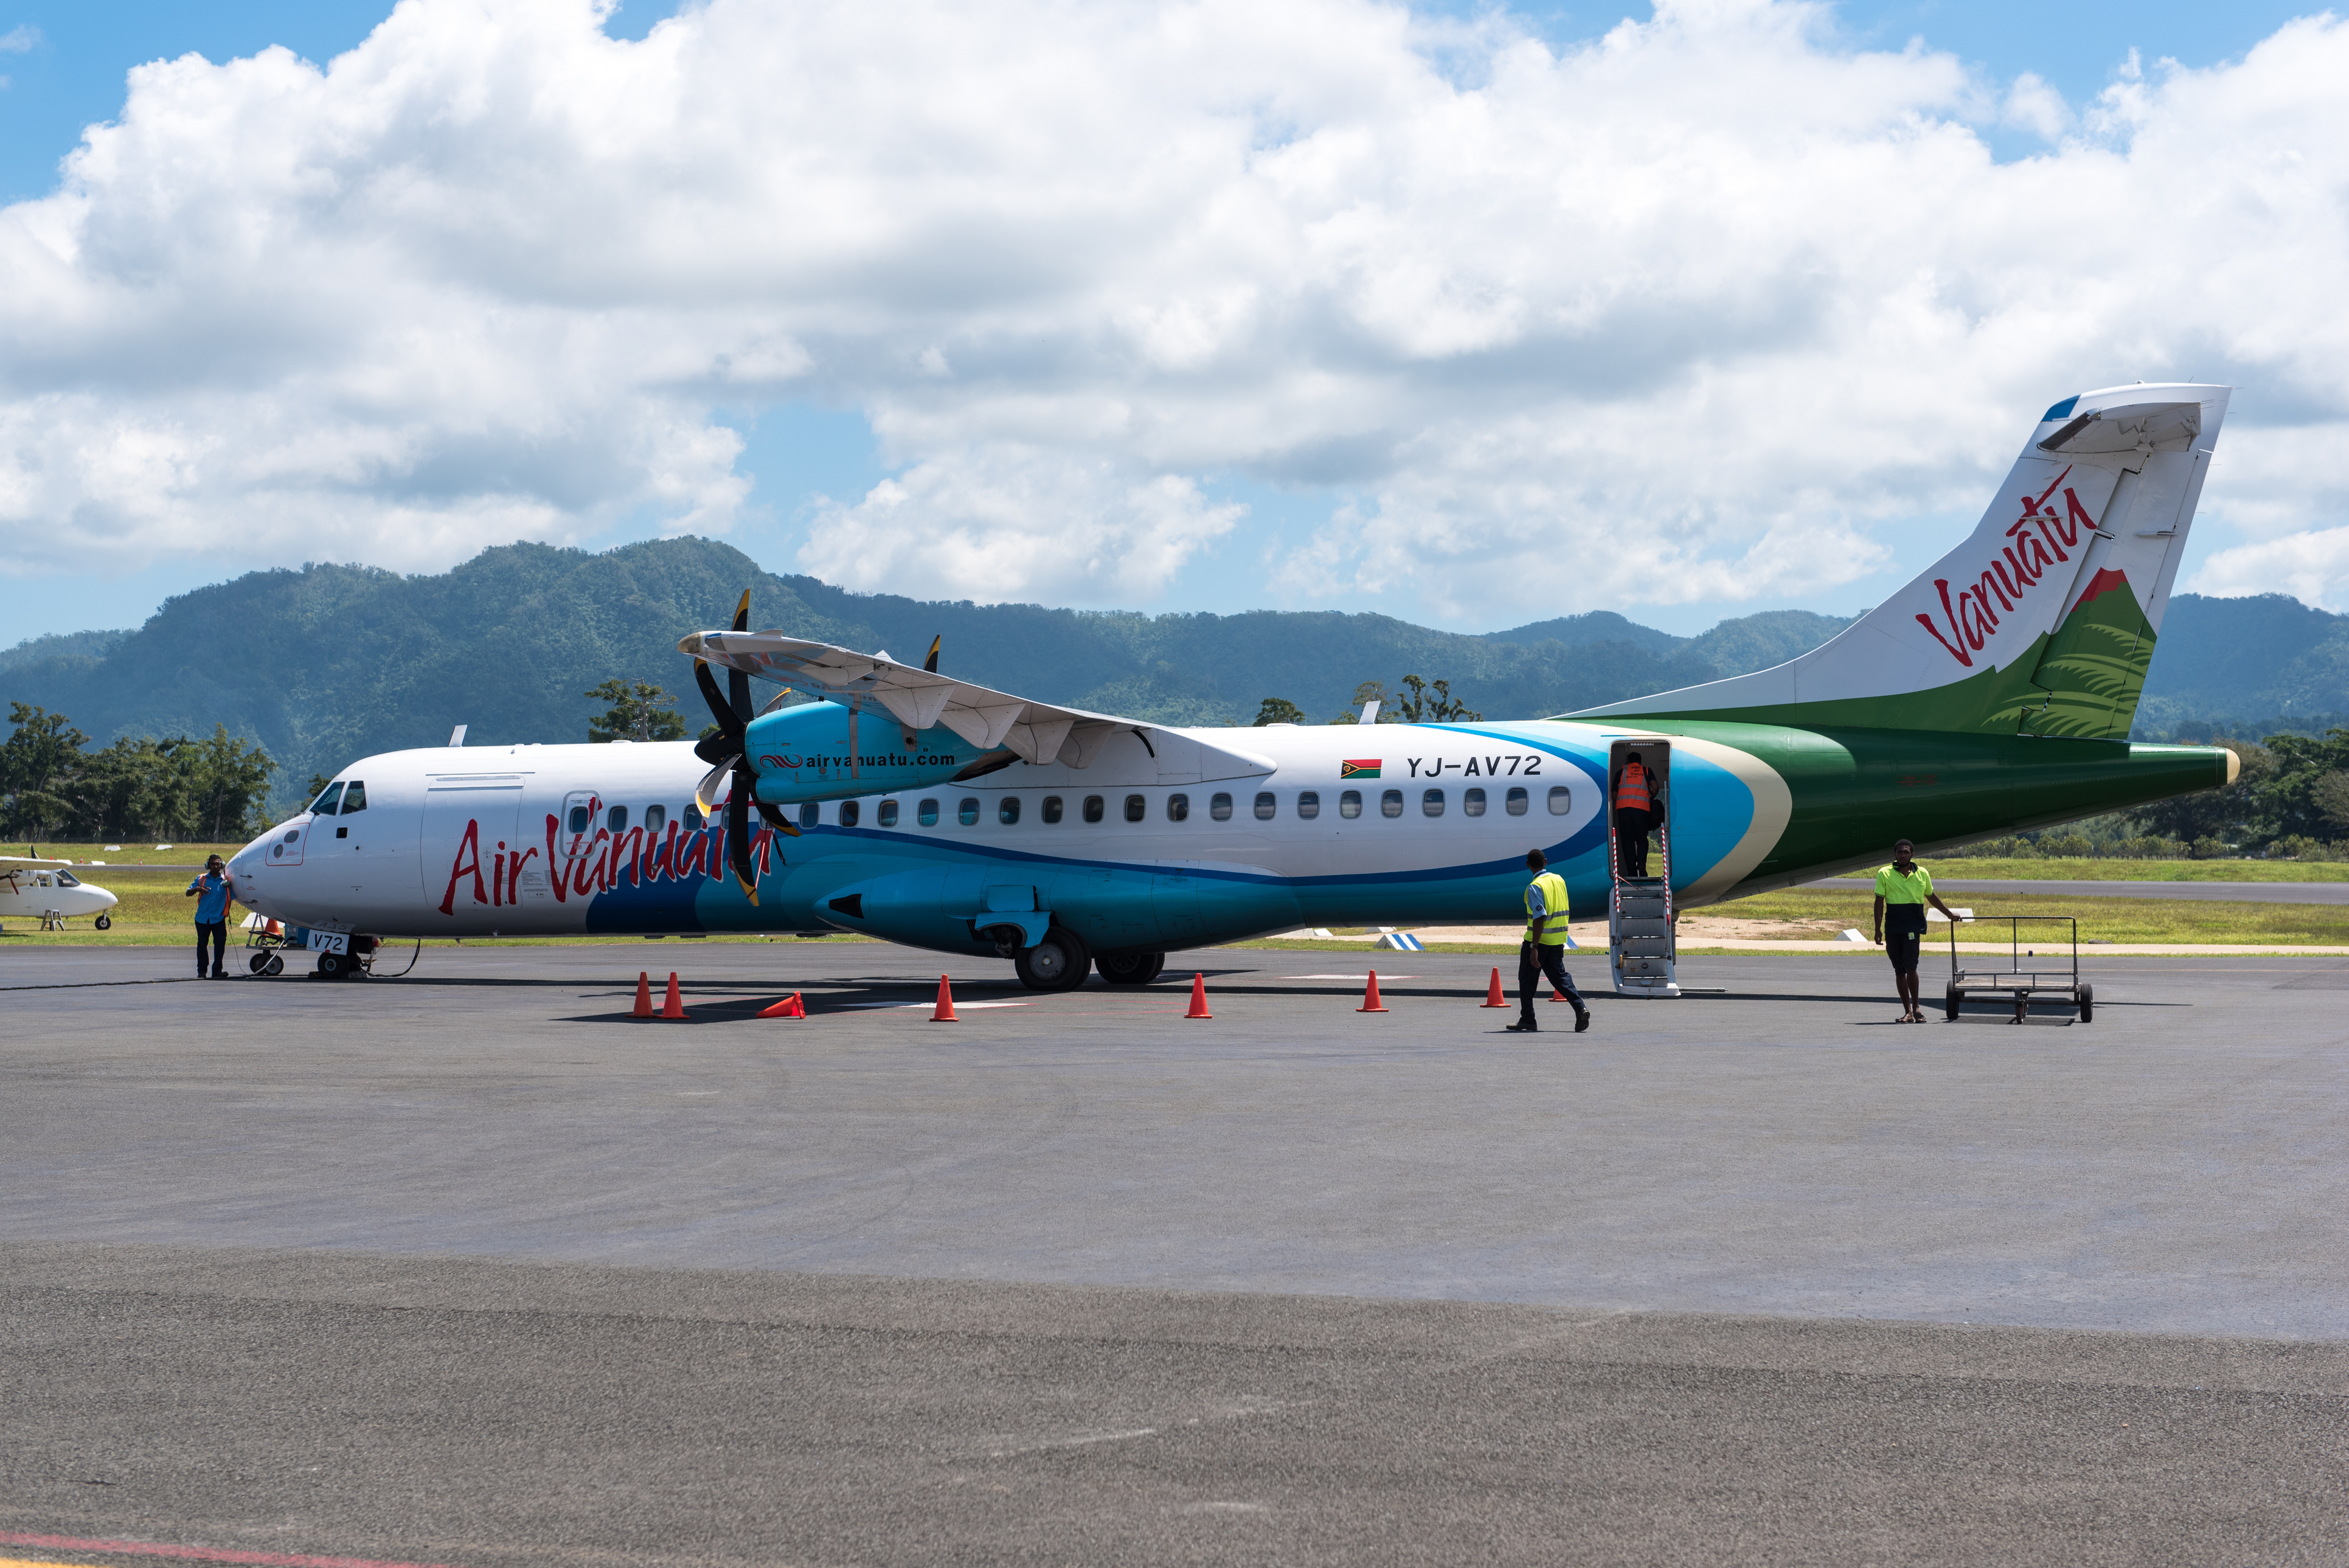 Air Vanuatu ATR 72-500 plane at Portvila airport